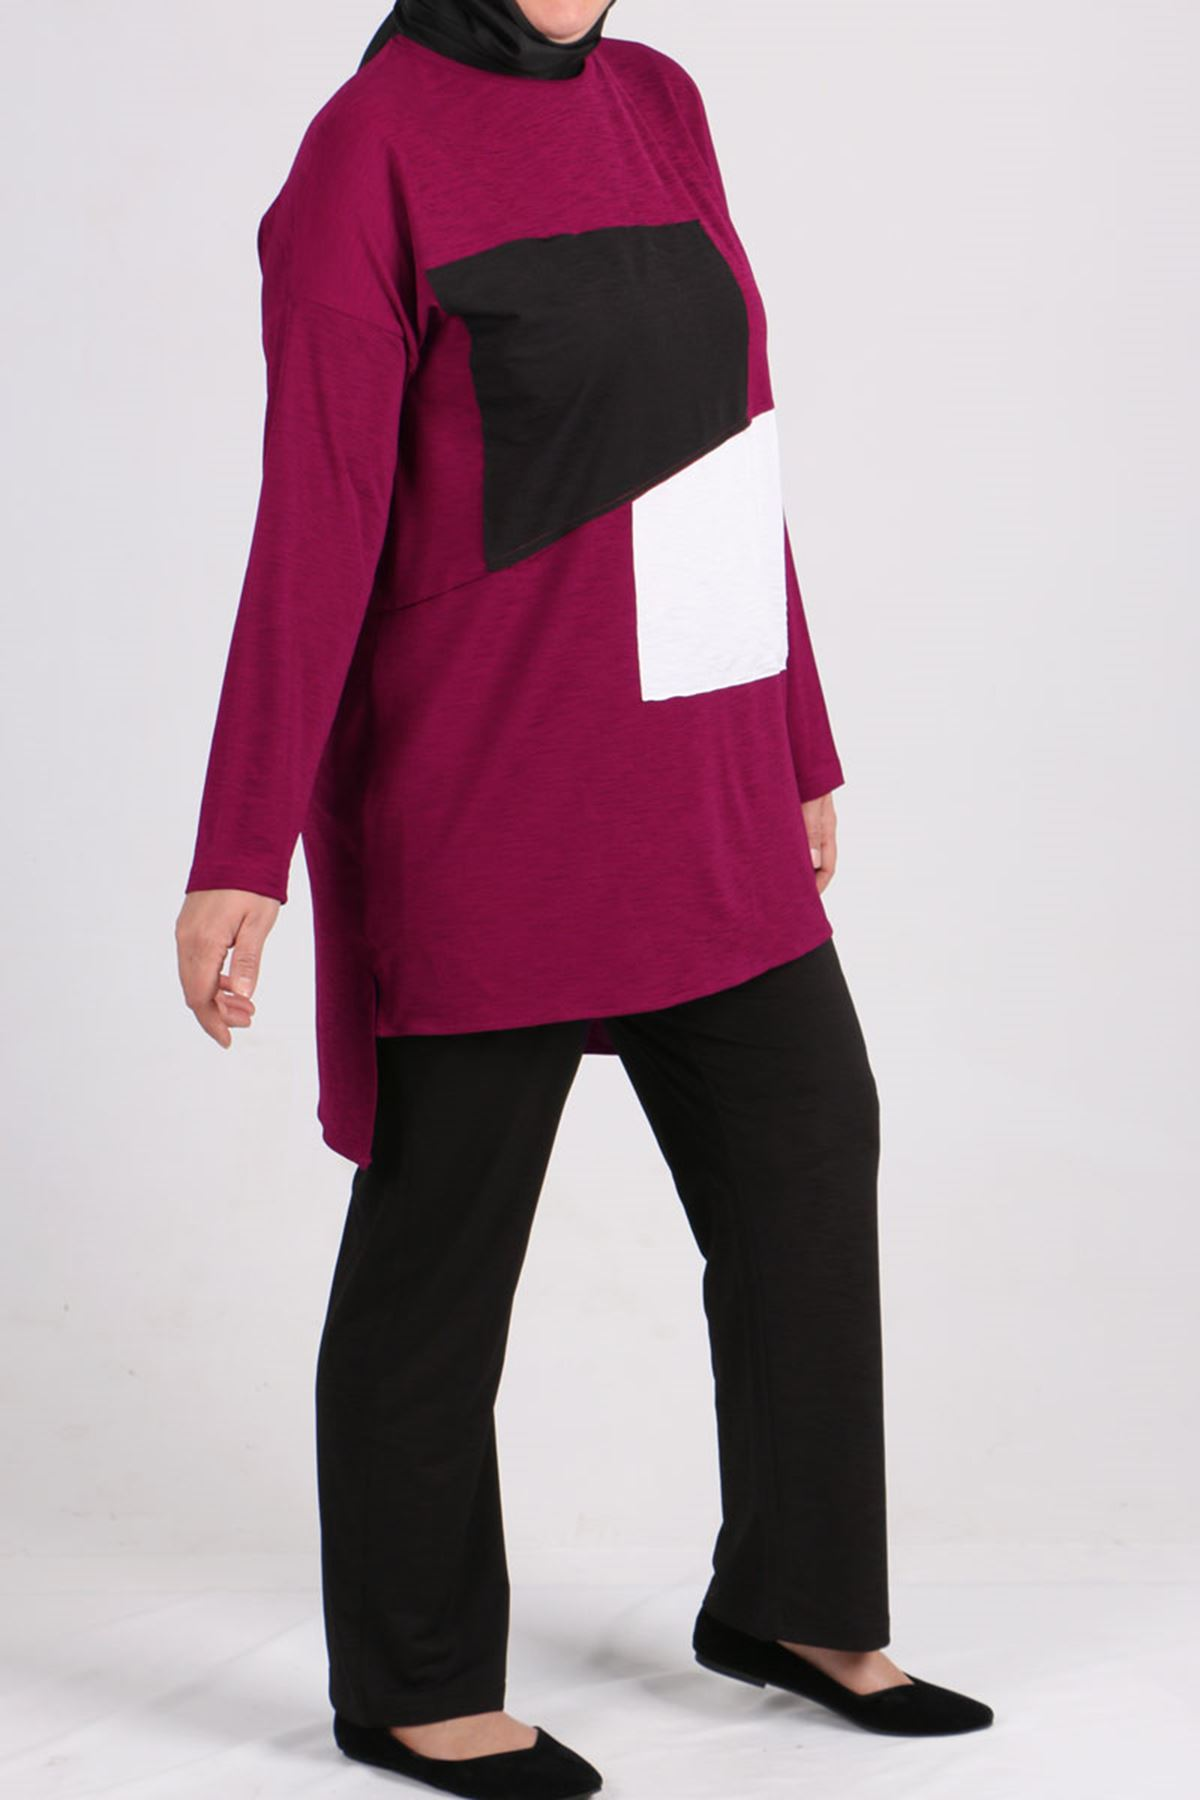 7696 Plus Size Two Piece Set with Tunic and Pants- Plum-Black